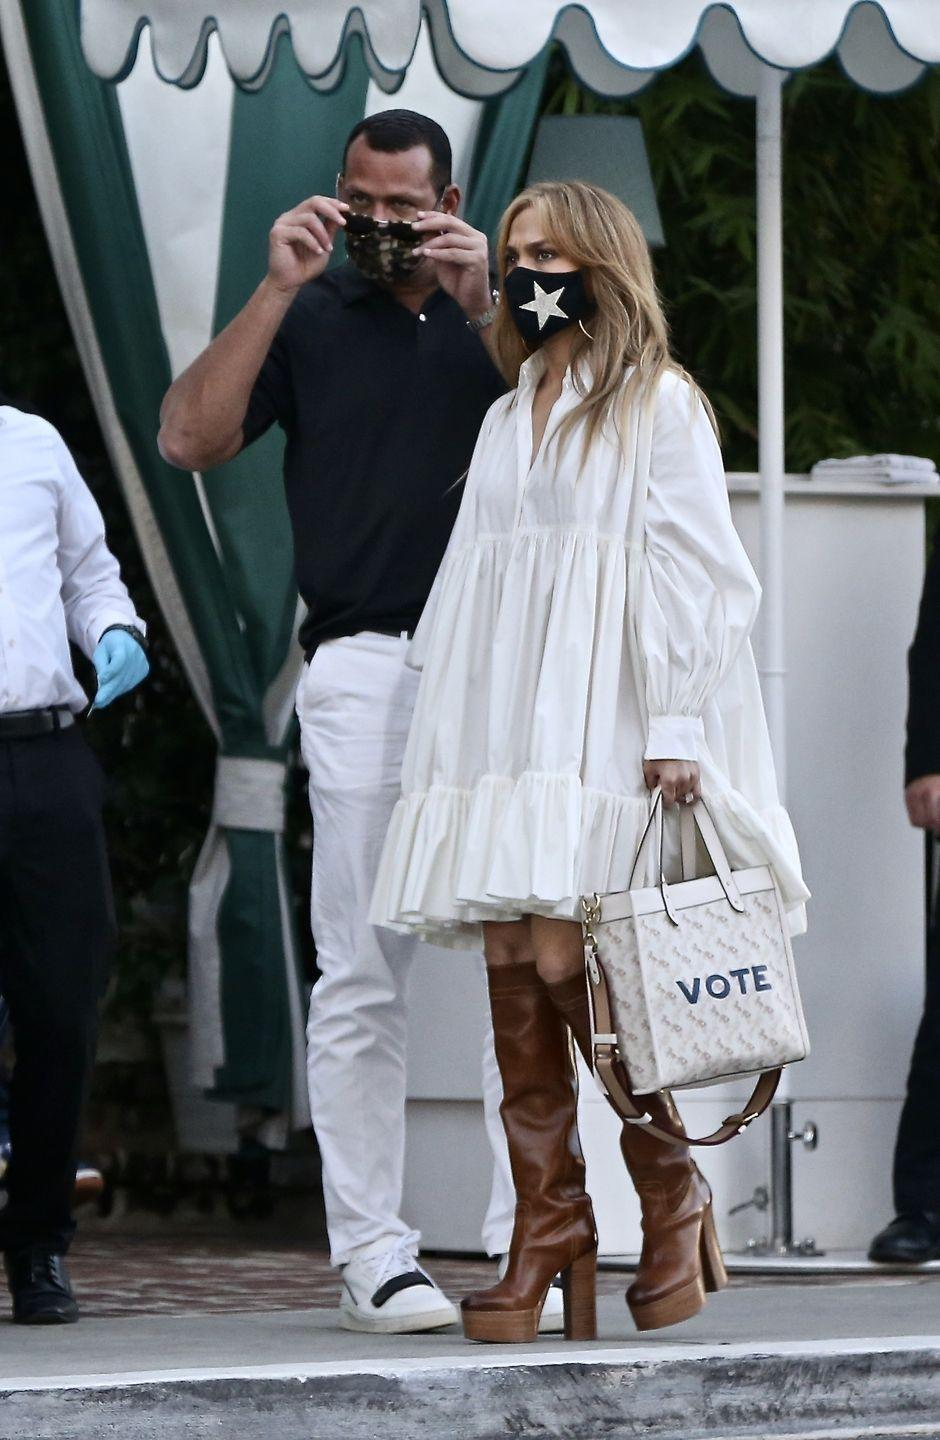 """<p>To catch dinner with her beau A Rod, J Lo stepped out in the perfect date night outfit, consisting of knee-high platform boots, an oversized shirt mini dress, a star mask, and a Coach bag with the encouragement 'VOTE' on its side. </p><p>Over the weekend the loved-up pair dressed up for <a href=""""https://www.elle.com/uk/fashion/trends/g16320/celebrity-halloween-costumes/"""" rel=""""nofollow noopener"""" target=""""_blank"""" data-ylk=""""slk:Halloween"""" class=""""link rapid-noclick-resp"""">Halloween</a>, with Lopez as Queen of Pop Madonna, and Rodriguez as Bruce Springsteen.</p><p><a class=""""link rapid-noclick-resp"""" href=""""https://go.redirectingat.com?id=127X1599956&url=https%3A%2F%2Fwww.selfridges.com%2FGB%2Fen%2Fcat%2Fcoach-tabby-pebbled-leather-shoulder-bag_1045-3005401-73995B4HA%2F&sref=https%3A%2F%2Fwww.elle.com%2Fuk%2Ffashion%2Fcelebrity-style%2Fg28491328%2Fjennifer-lopez-best-looks%2F"""" rel=""""nofollow noopener"""" target=""""_blank"""" data-ylk=""""slk:SHOP COACH BAG"""">SHOP COACH BAG</a></p>"""